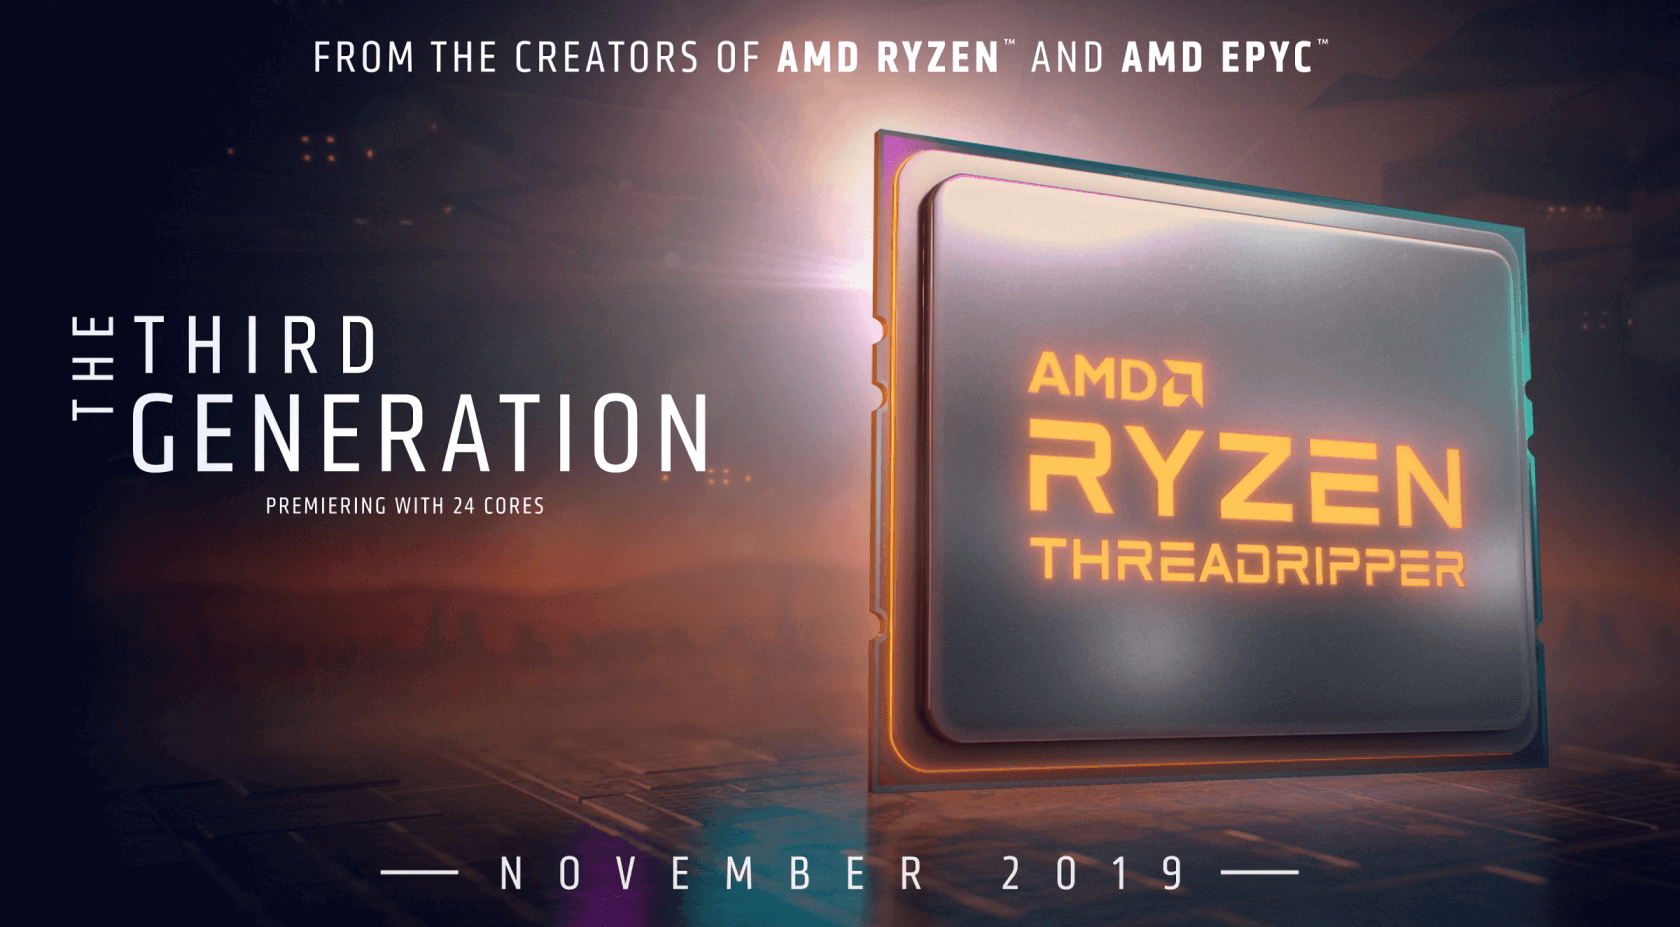 AMD announces 3rd Gen Ryzen Threadripper CPU, delays Ryzen 9 3950X